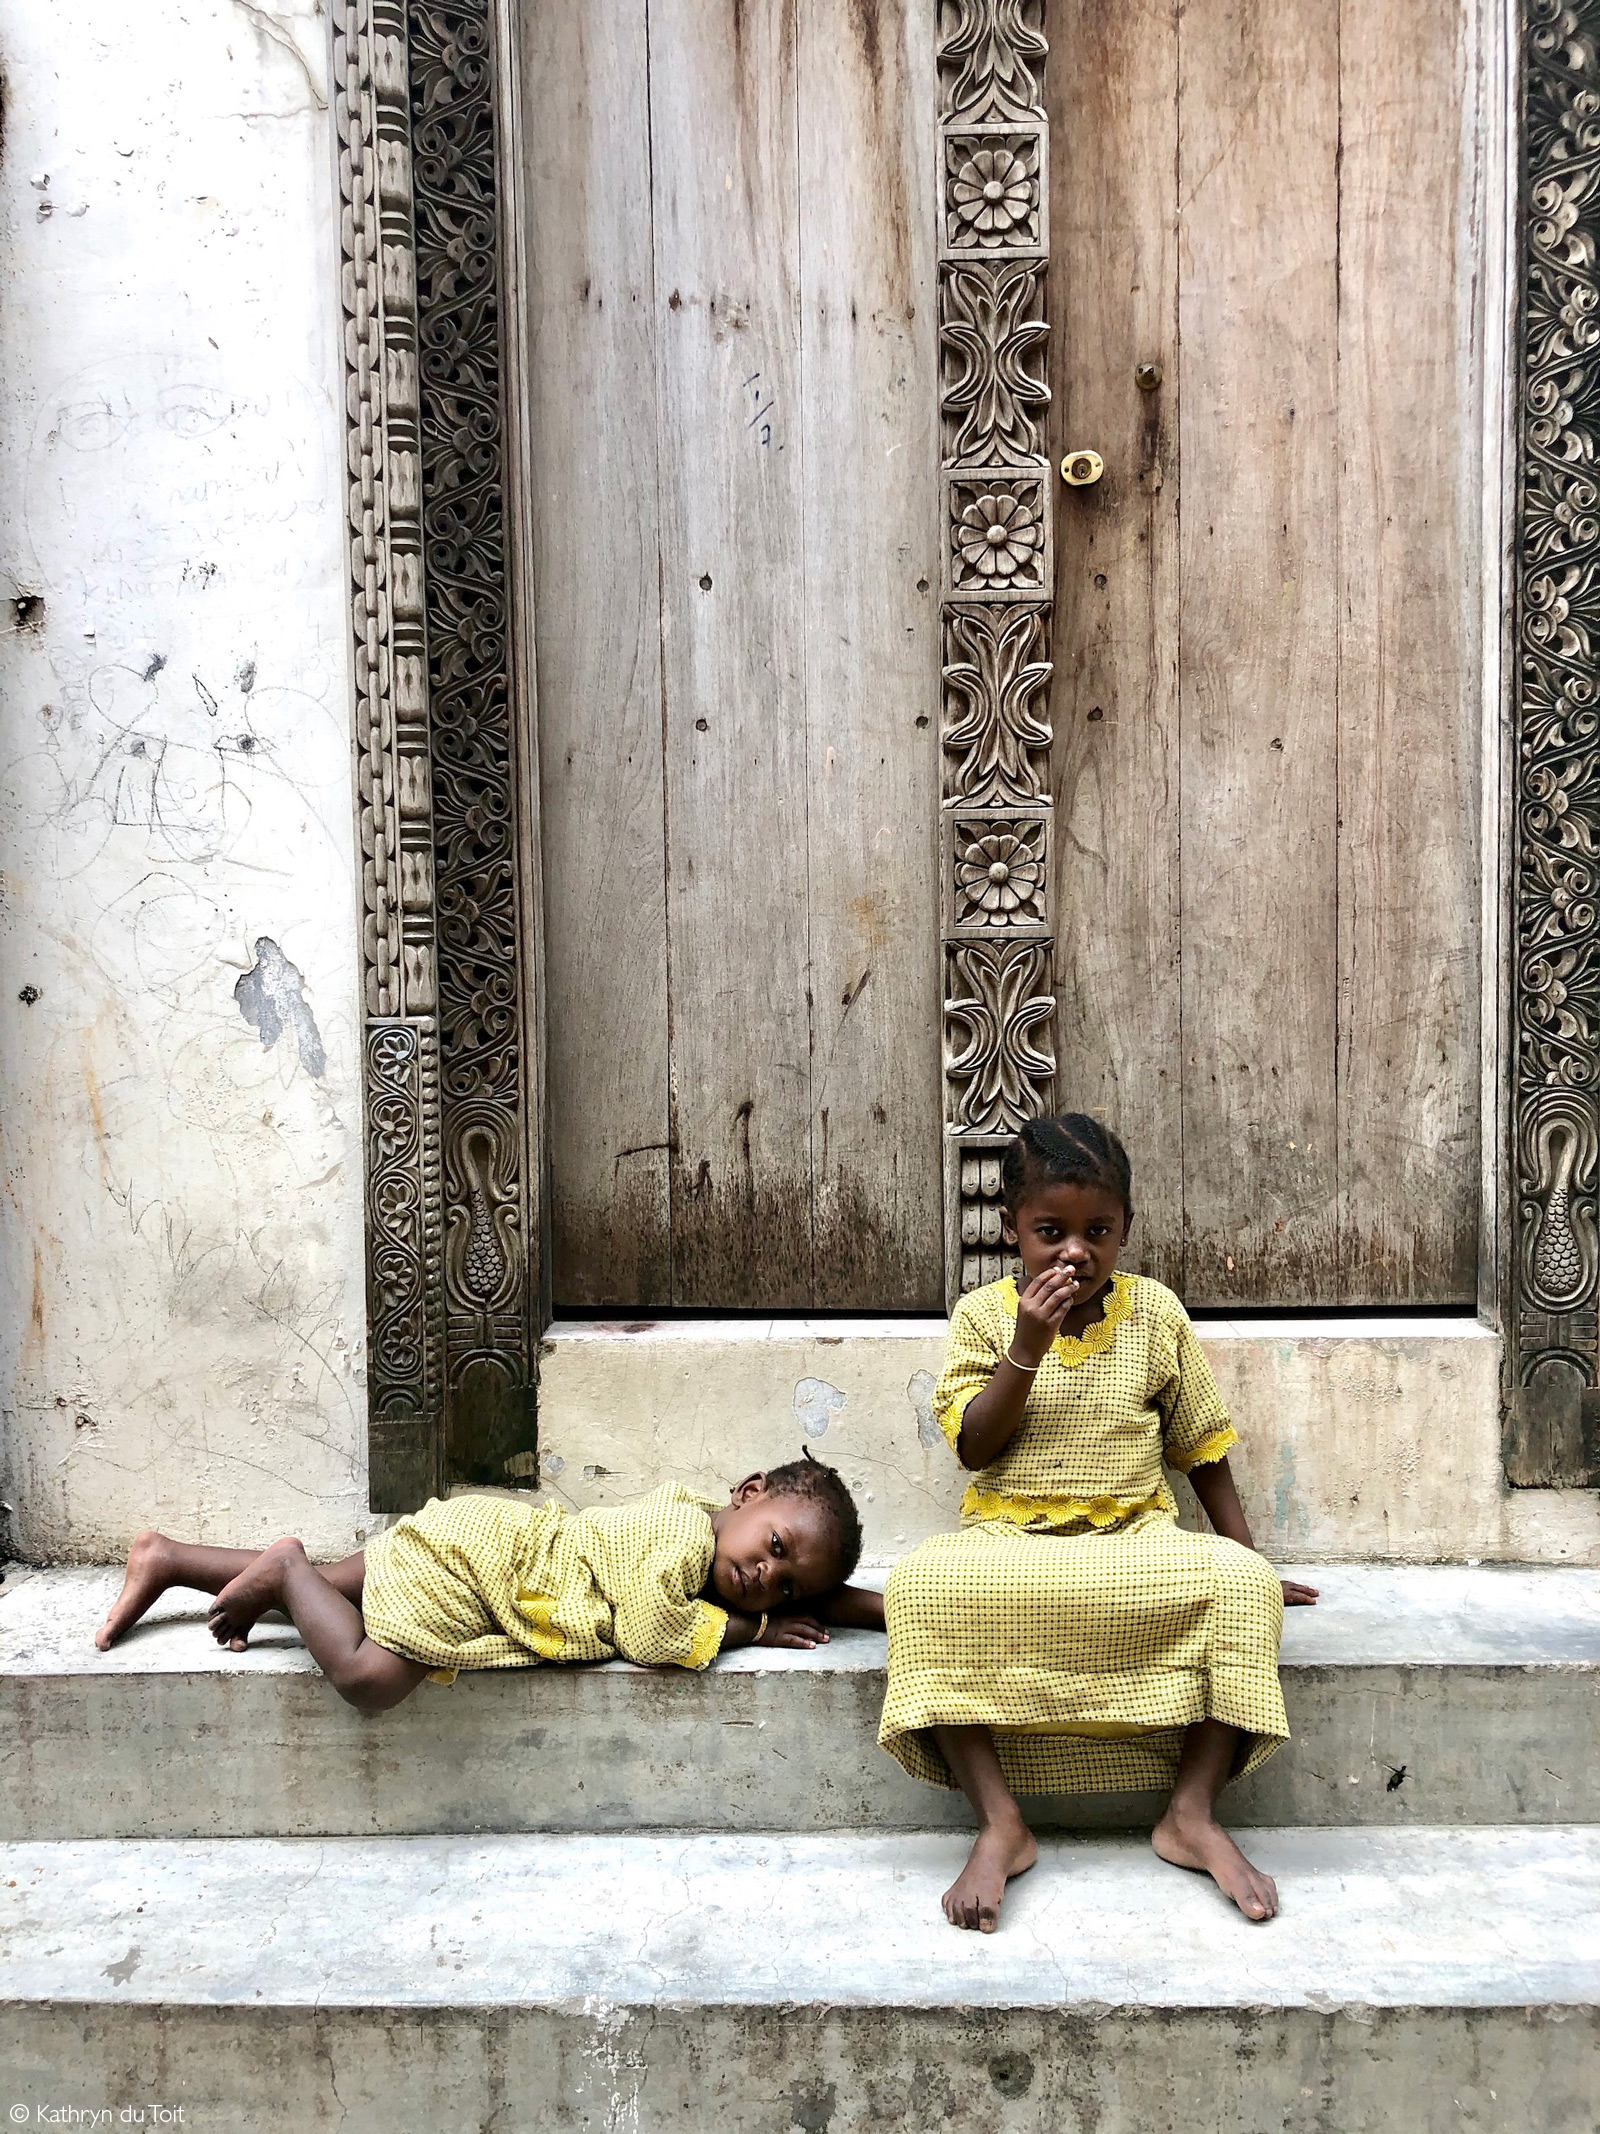 Children by a traditionally carved door. Stone Town, Zanzibar © Kathryn du Toit